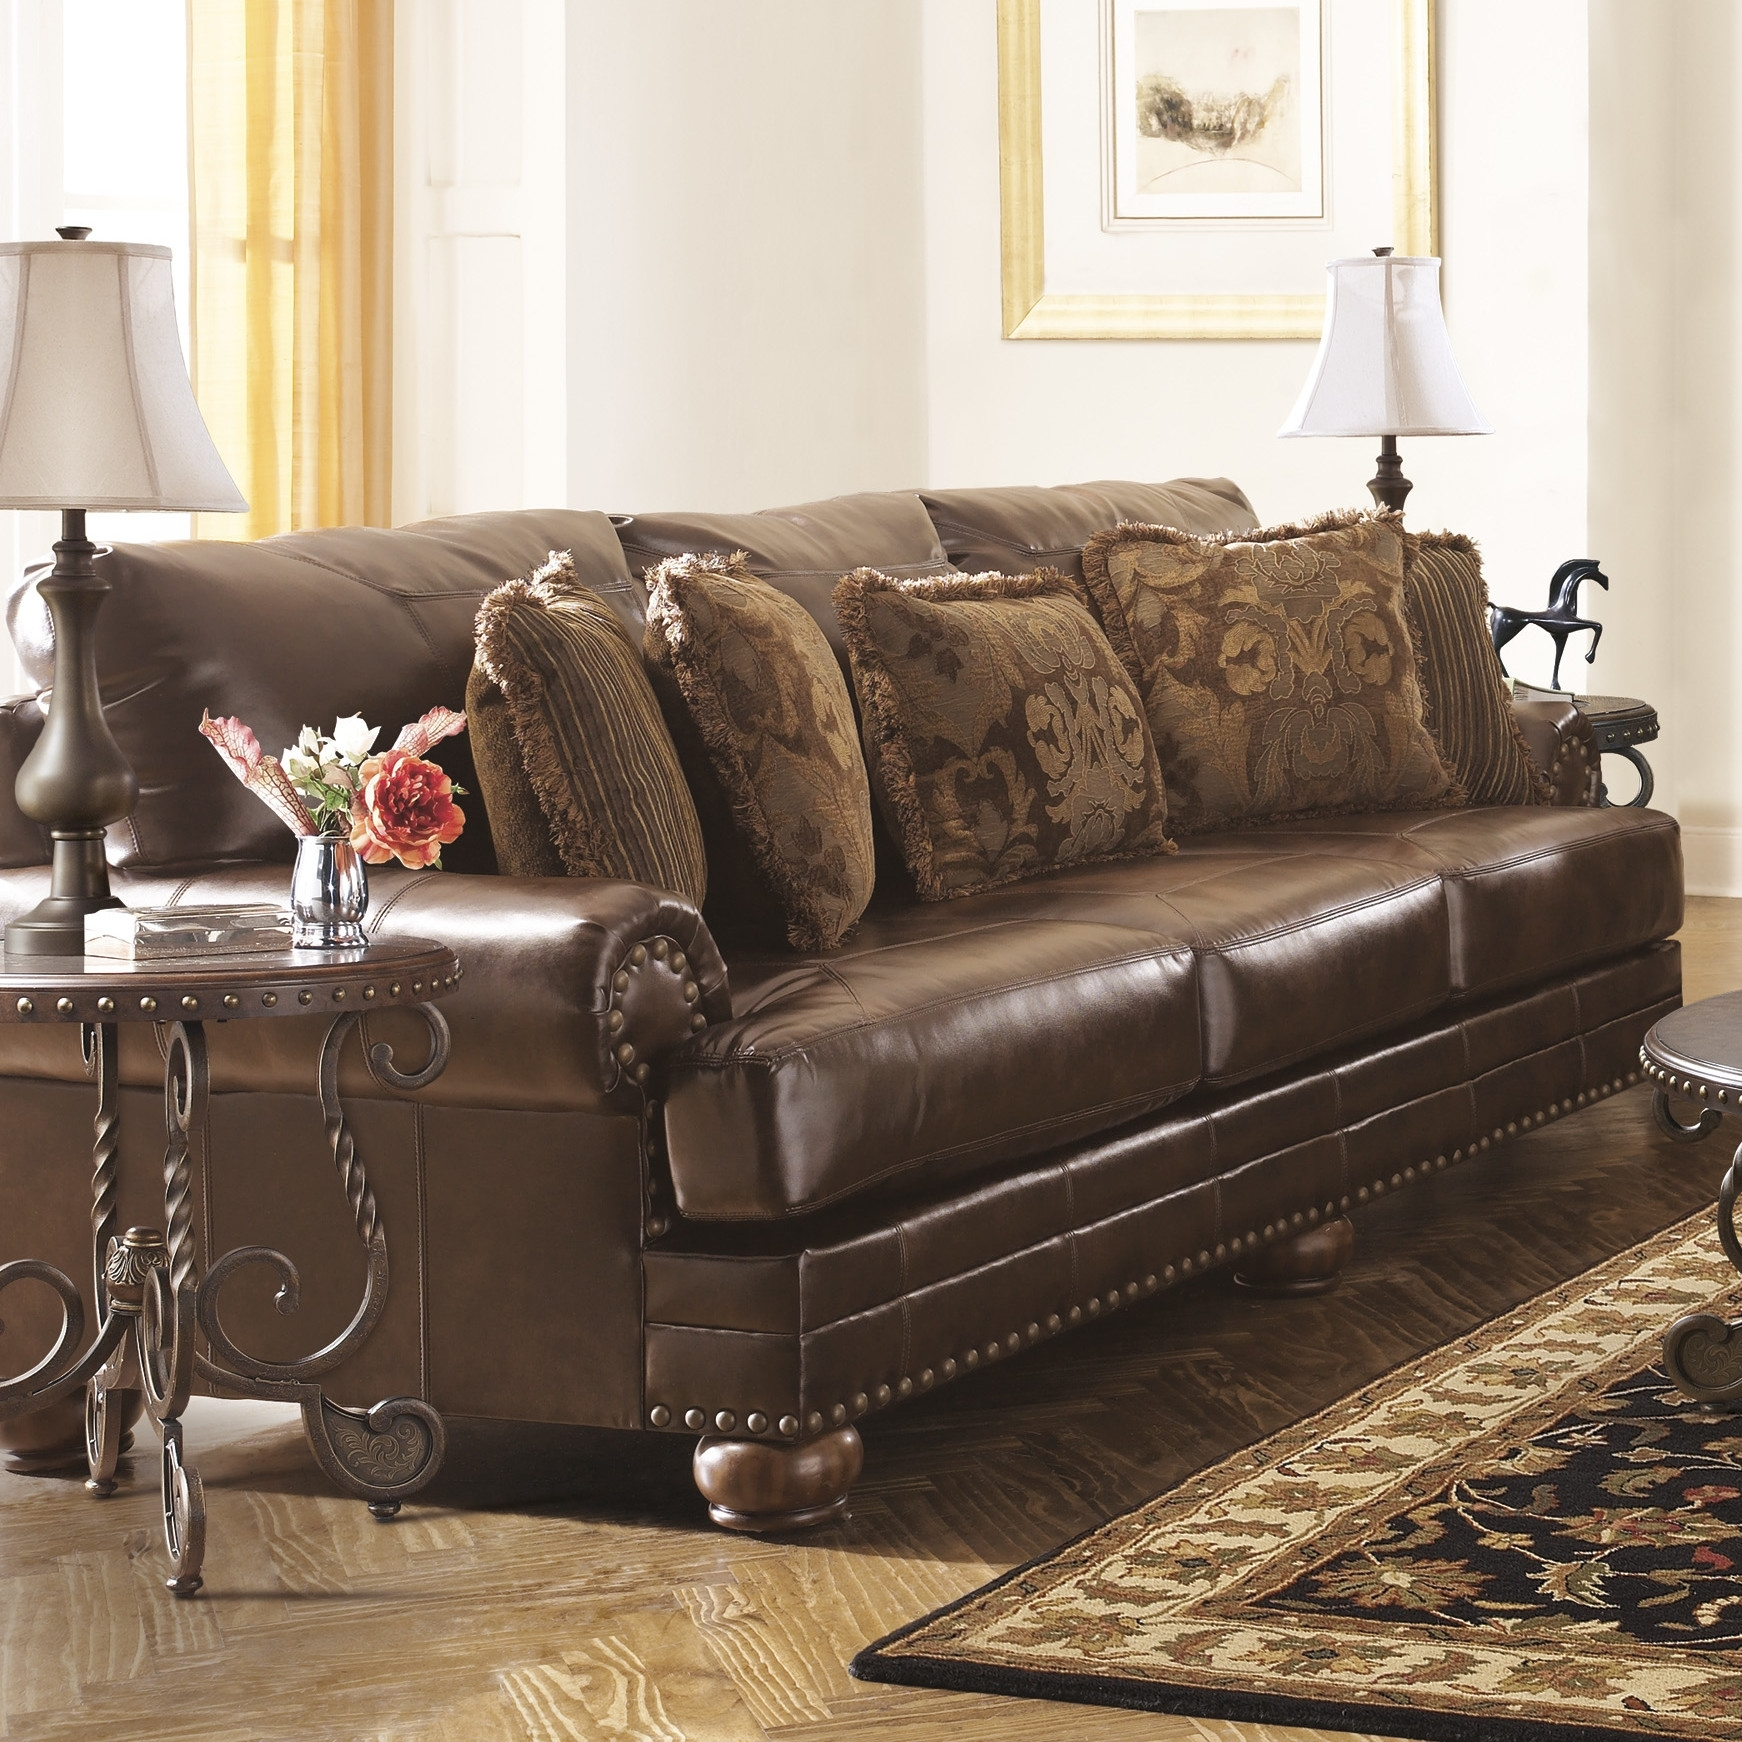 10 Ideas Of Made In North Carolina Sectional Sofas